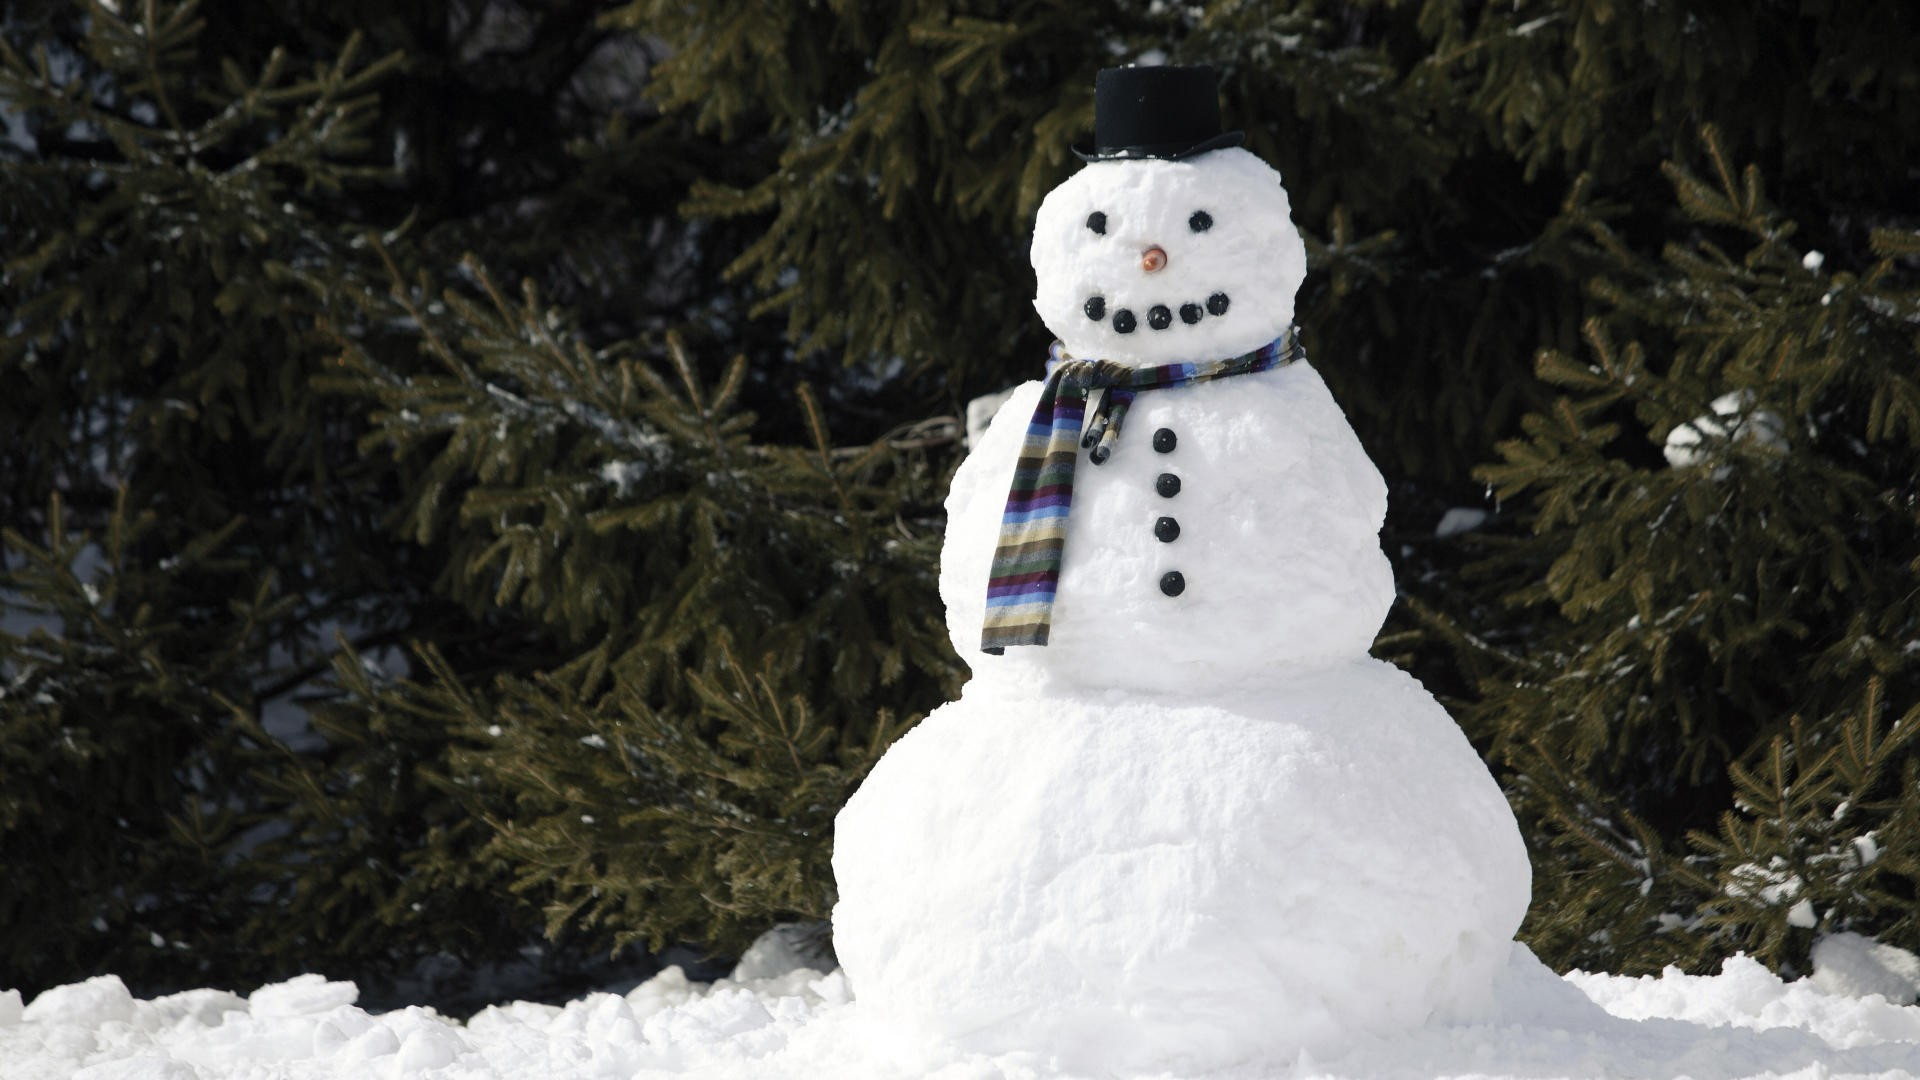 1920x1080 Snowman with a scarf